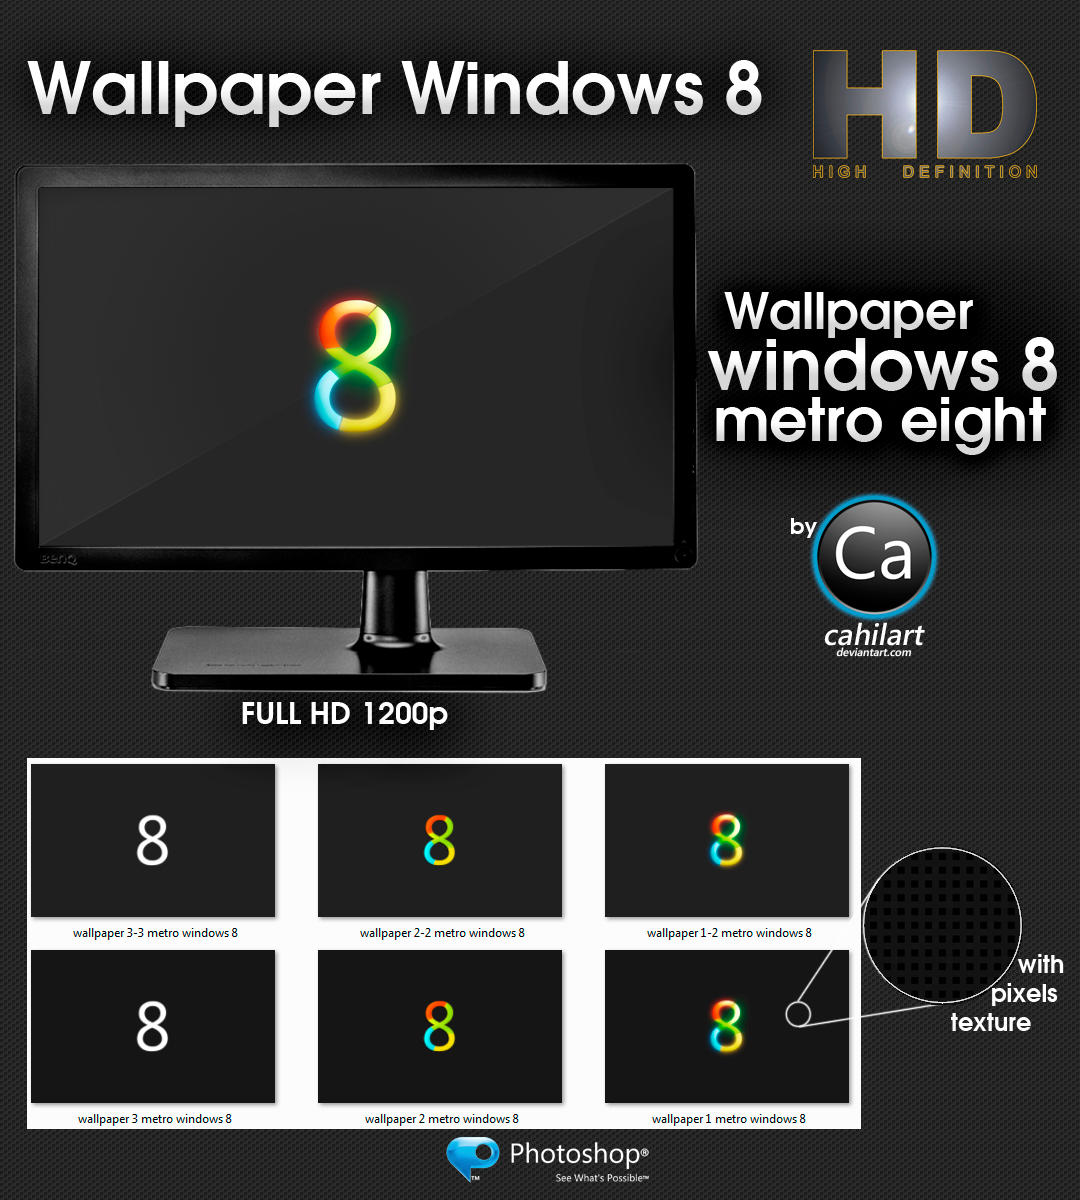 Wallpaper Windows Metro 8 by CaHilART